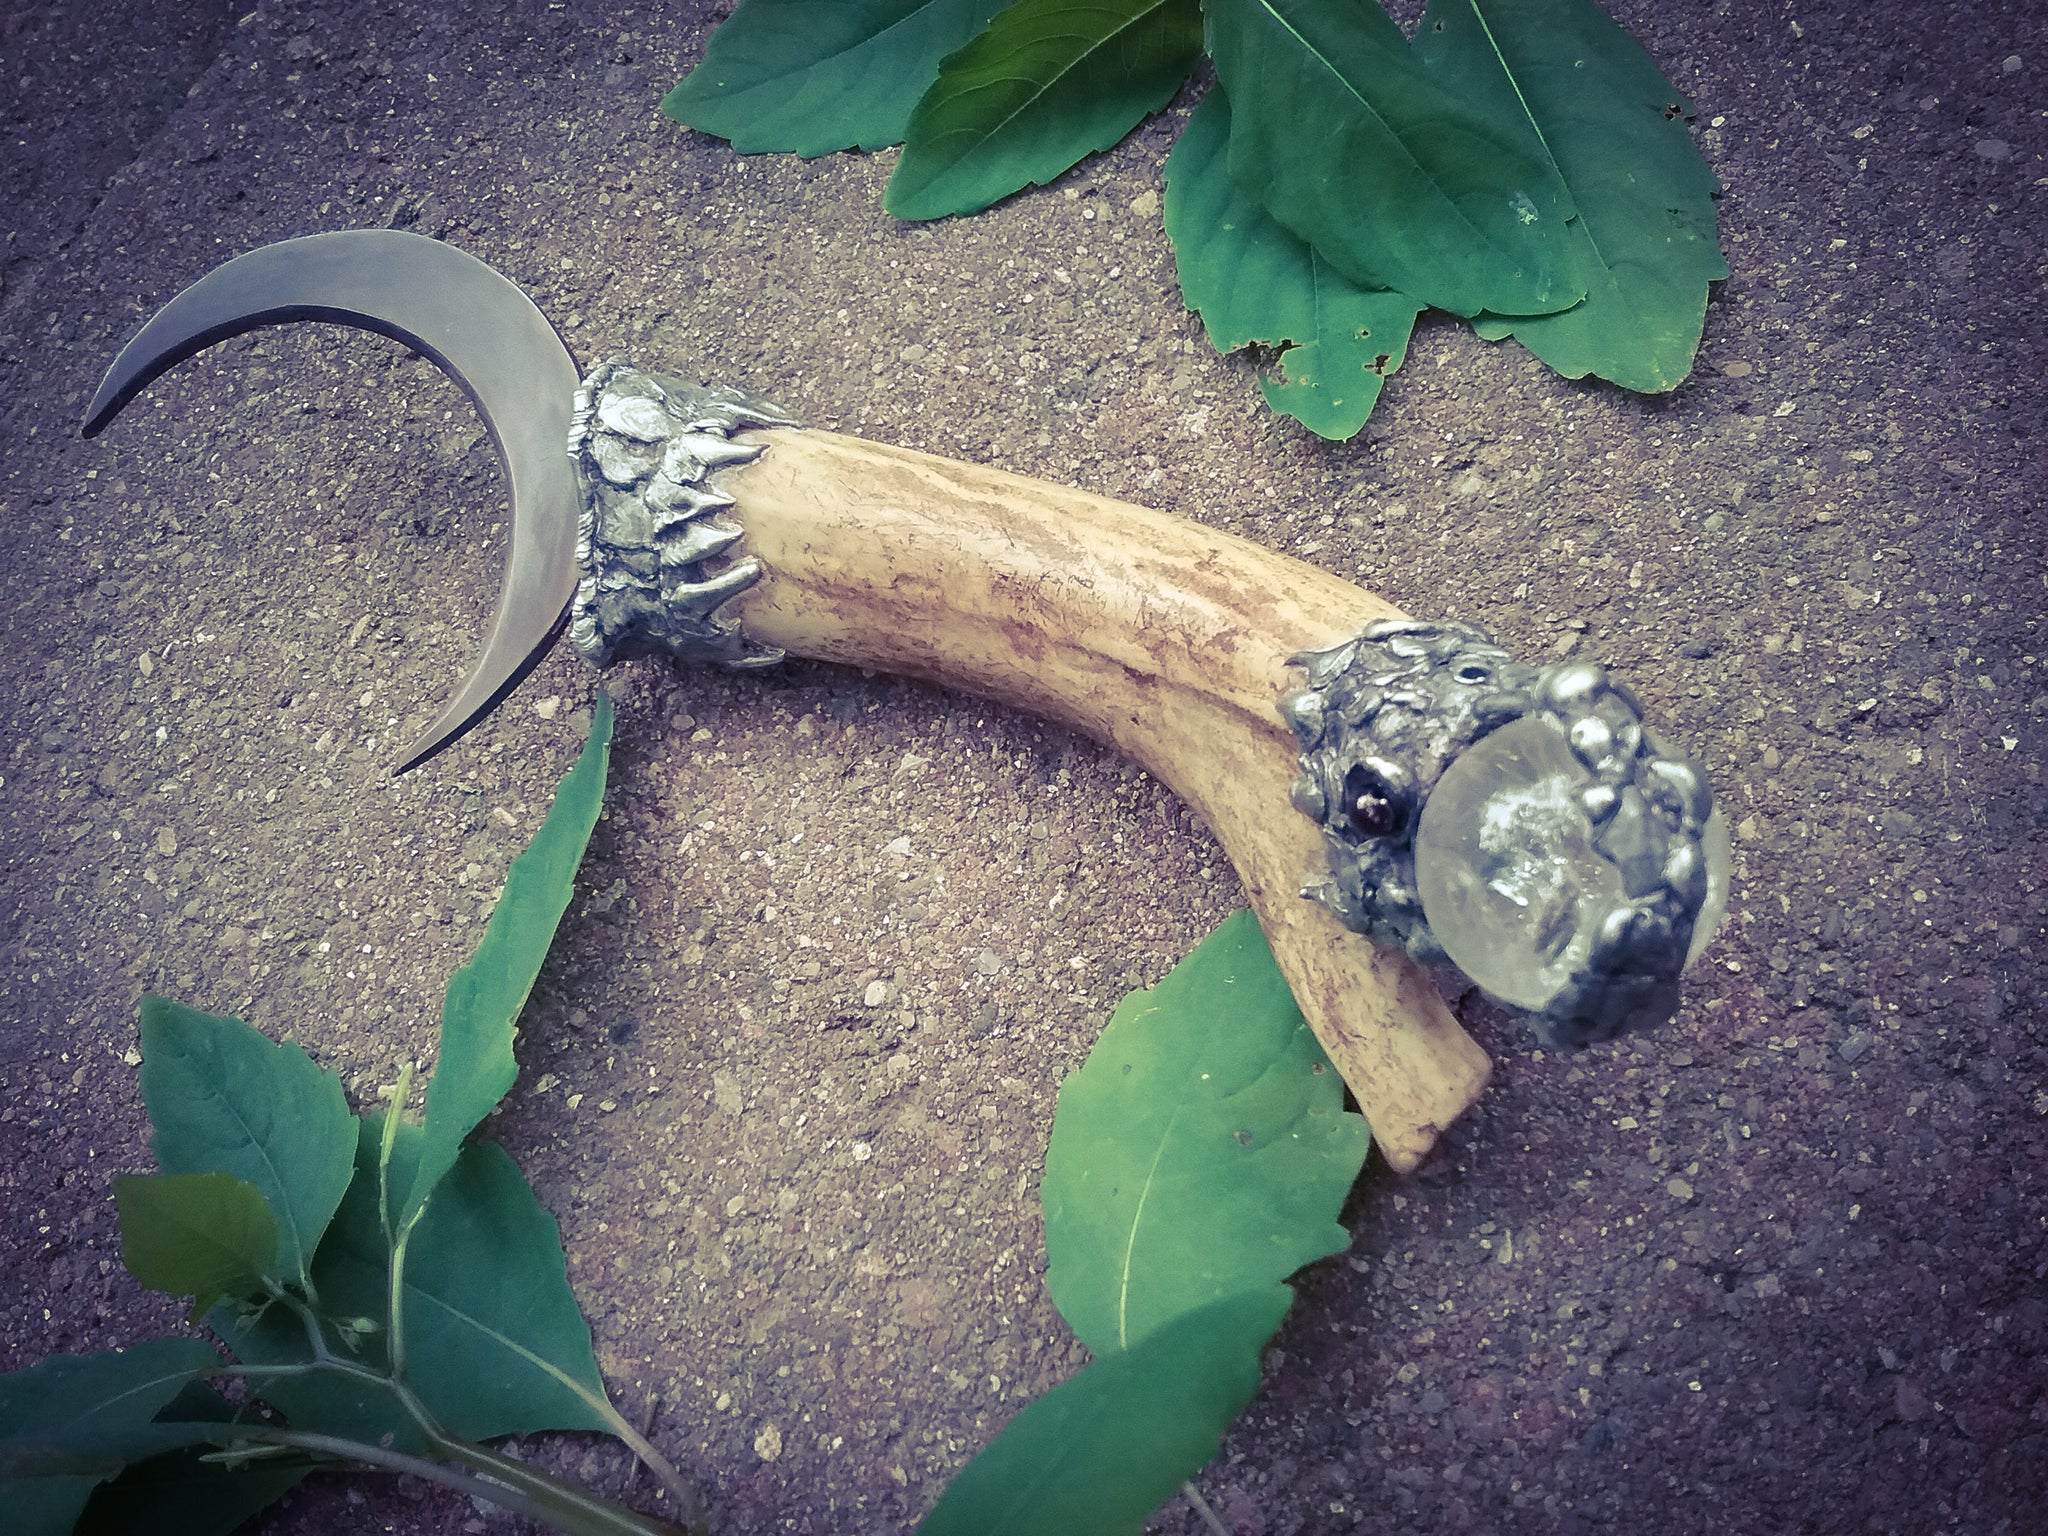 Druids Boline~ Cresent Witches Knife